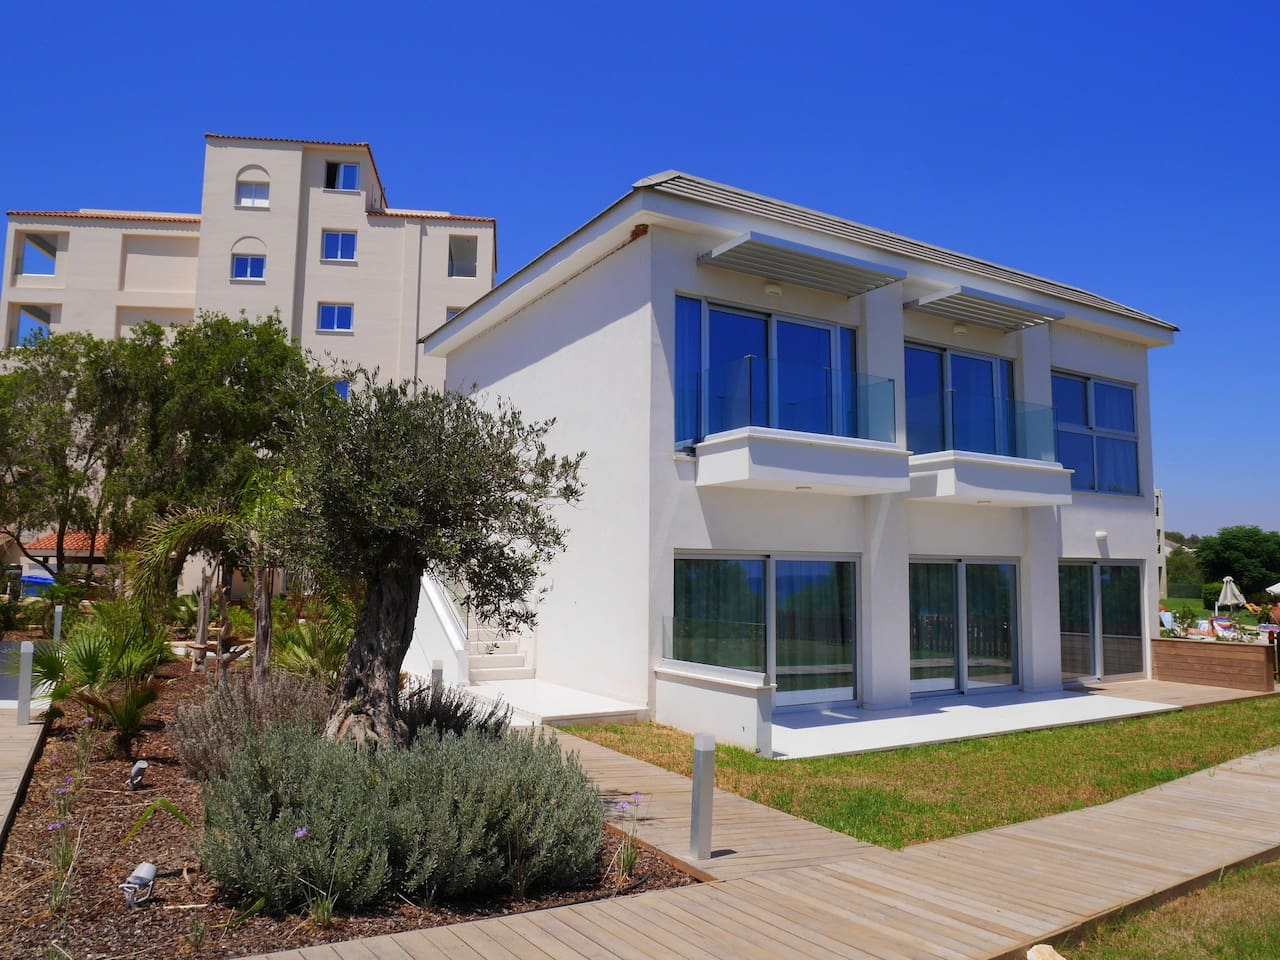 2 Bed Luxury Apt with Large Communal Pool - B3-101 photo 26022039